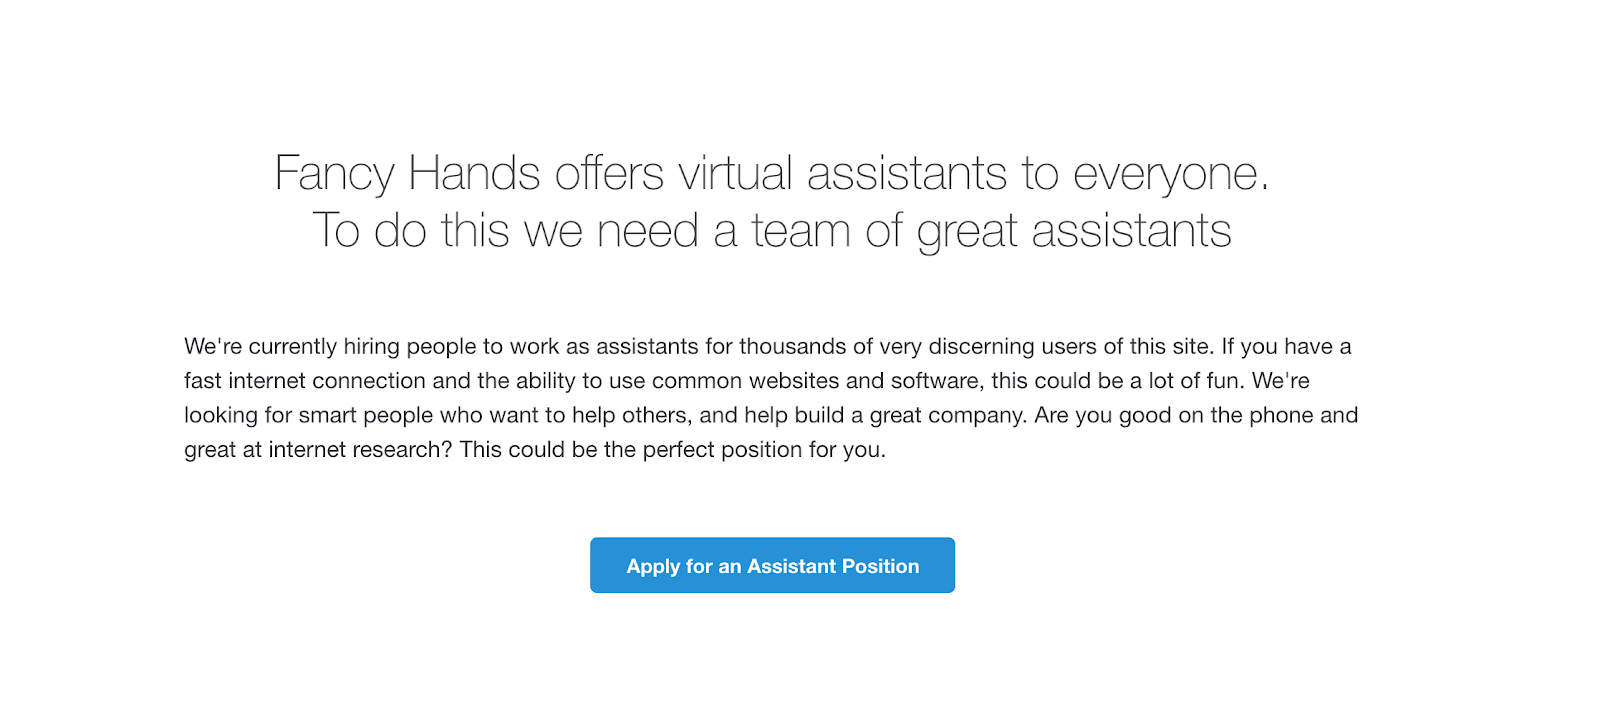 The Fancy Hands web page to apply for an assistant position